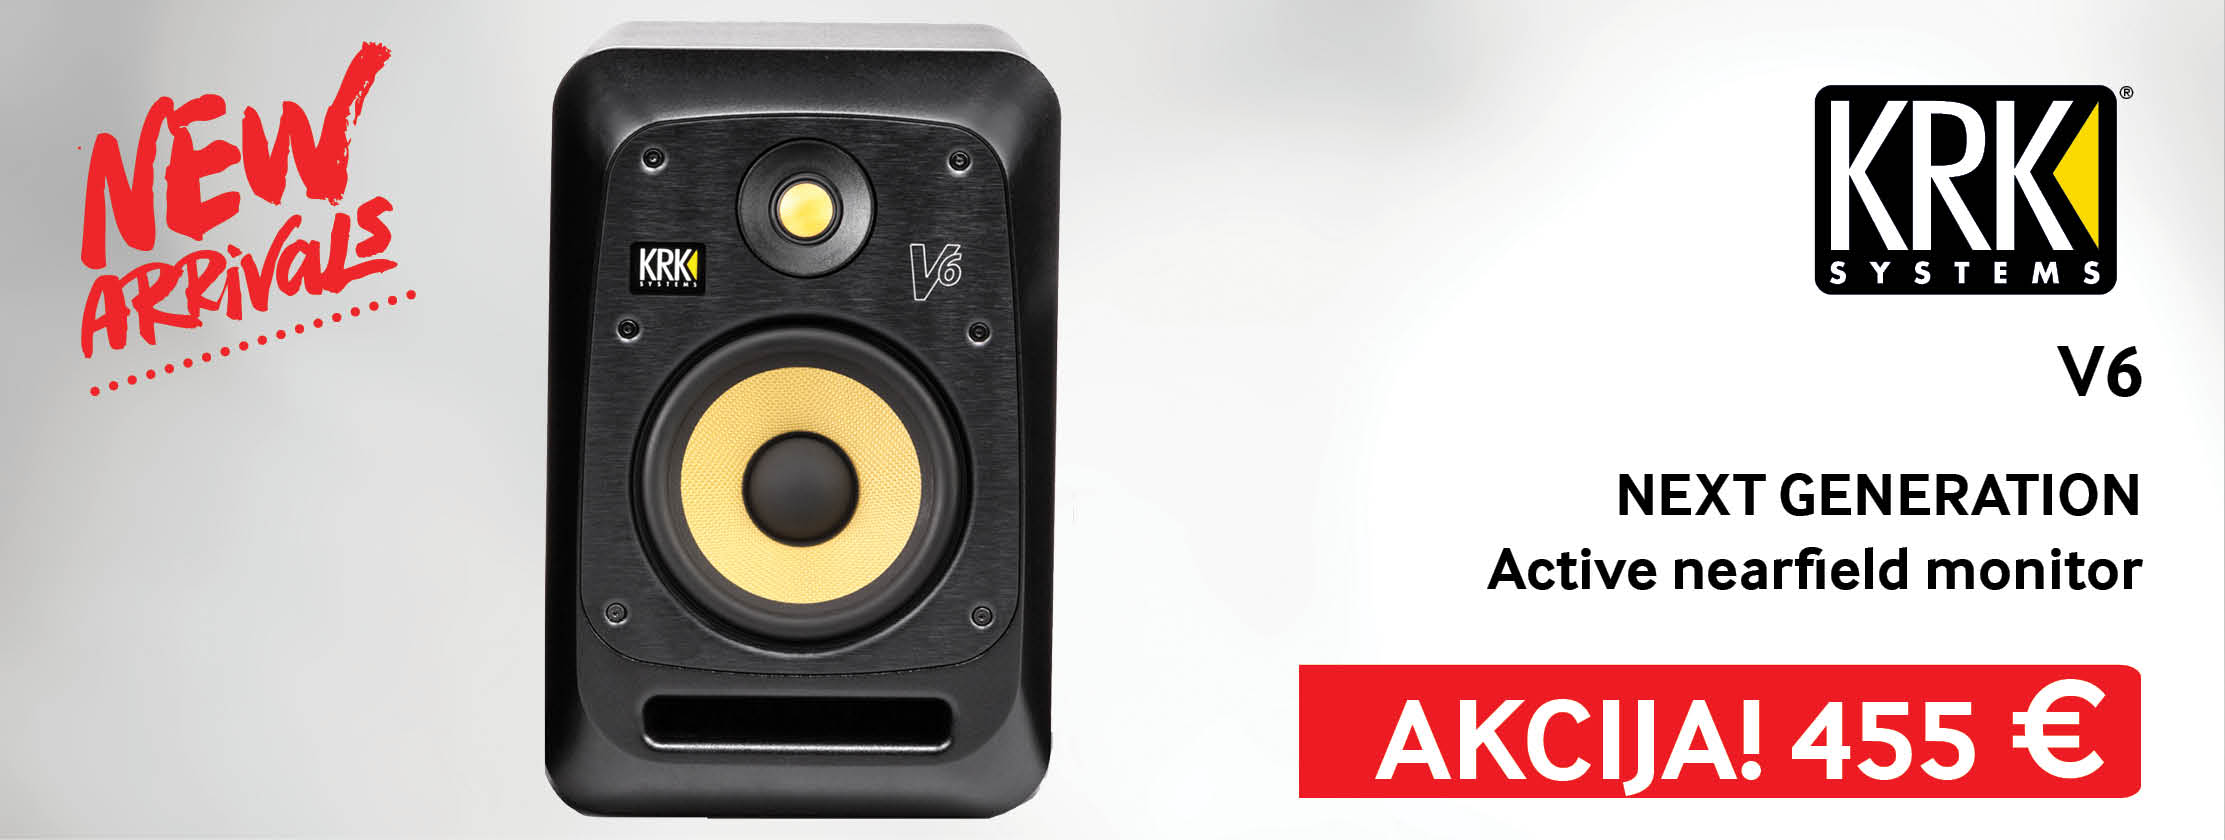 KRK Systems V6 Active nearfield monitor